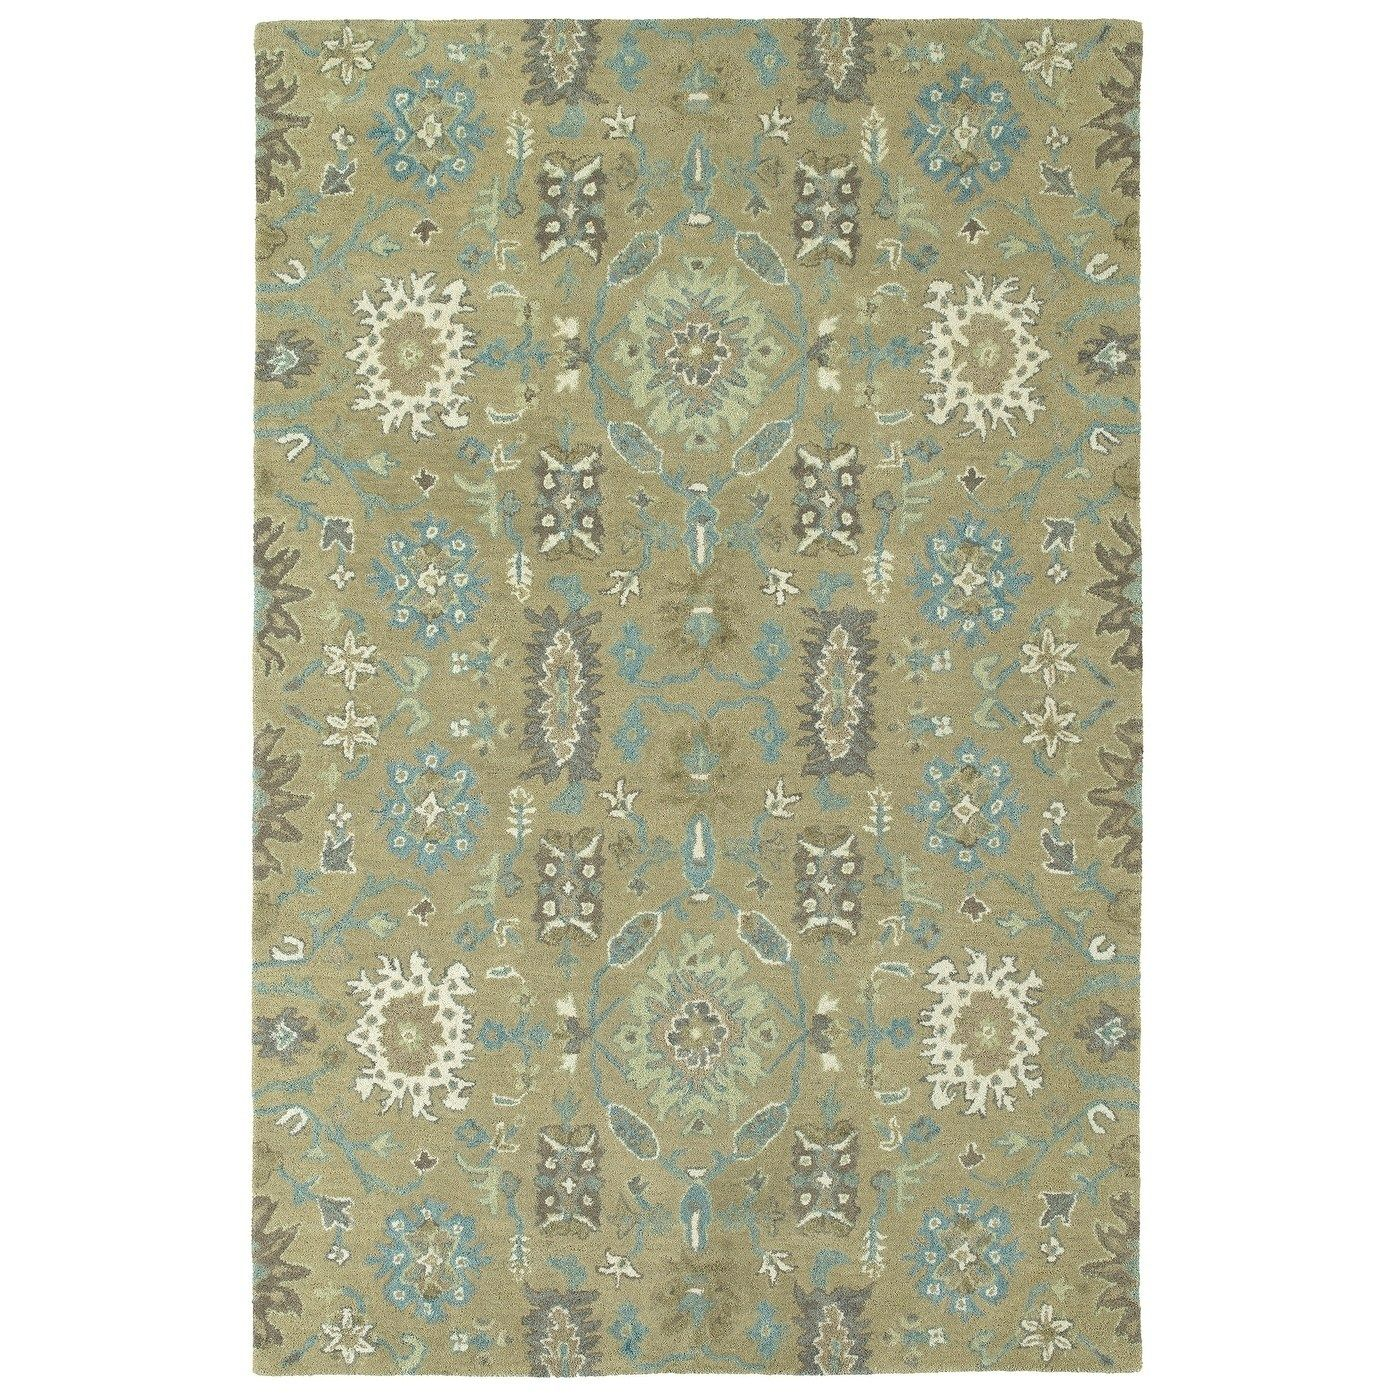 Hand Tufted Tannica Sage Wool Rug 8 X 10 Sage 8 X 10 Green Bombay Home Area Rugs Rugs Southwestern Area Rugs